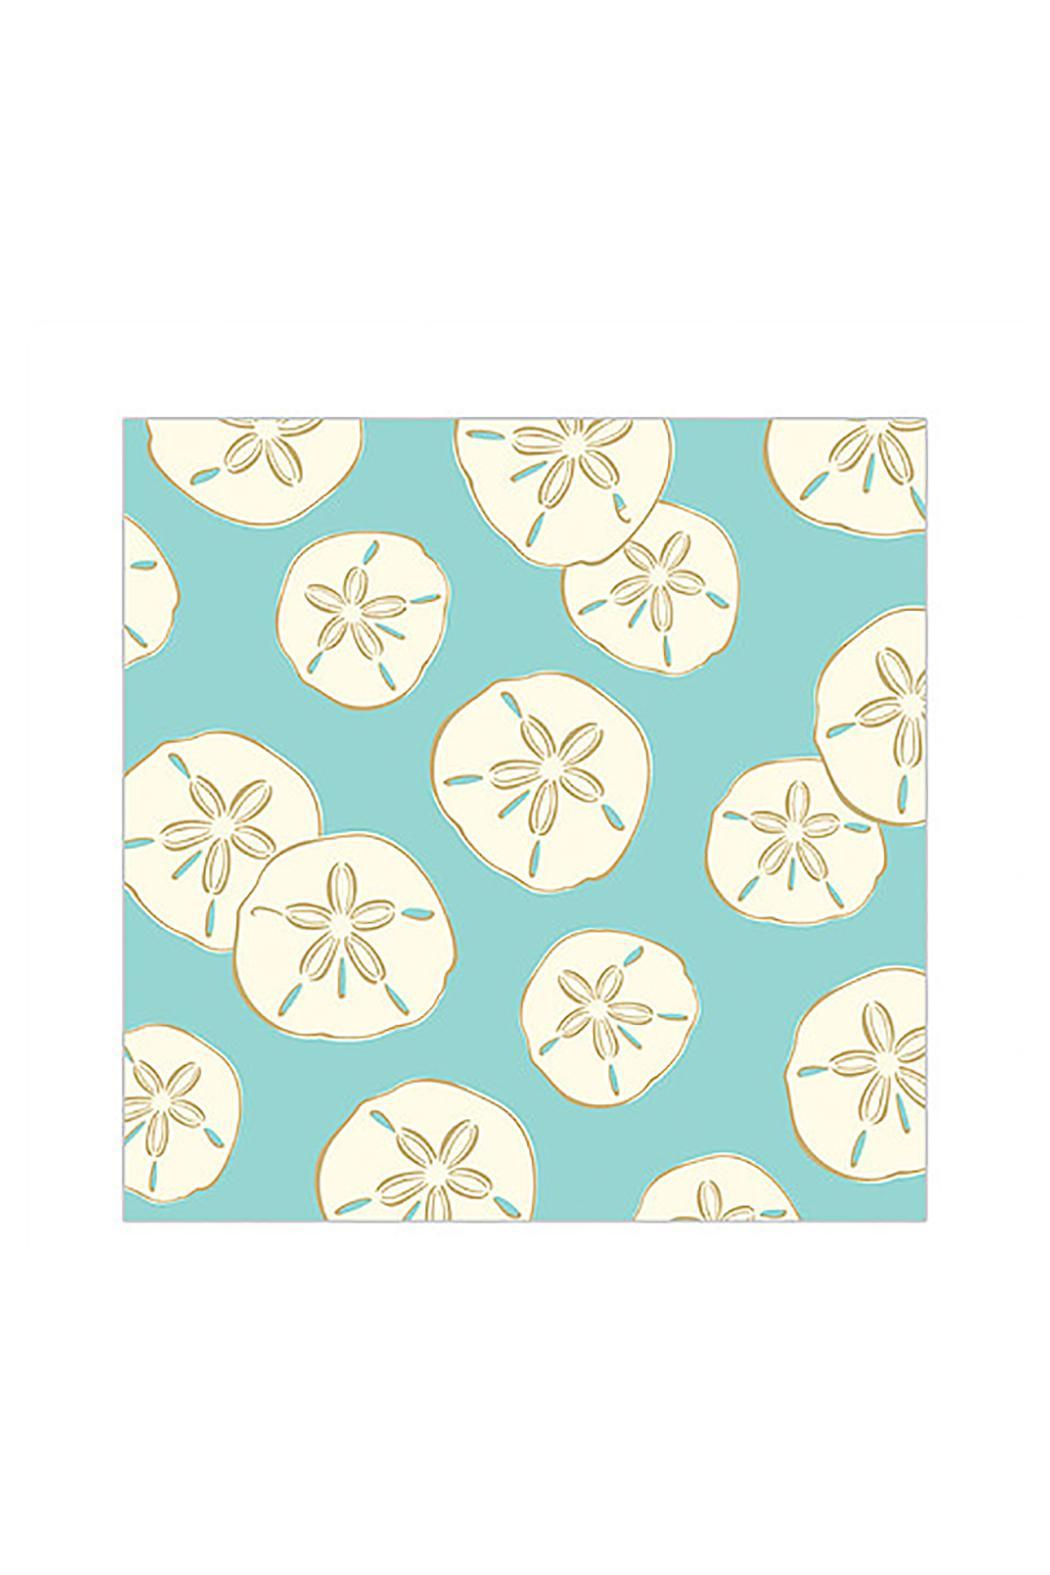 buy wrapping paper online canada Online shopping from a great selection at toys store store.